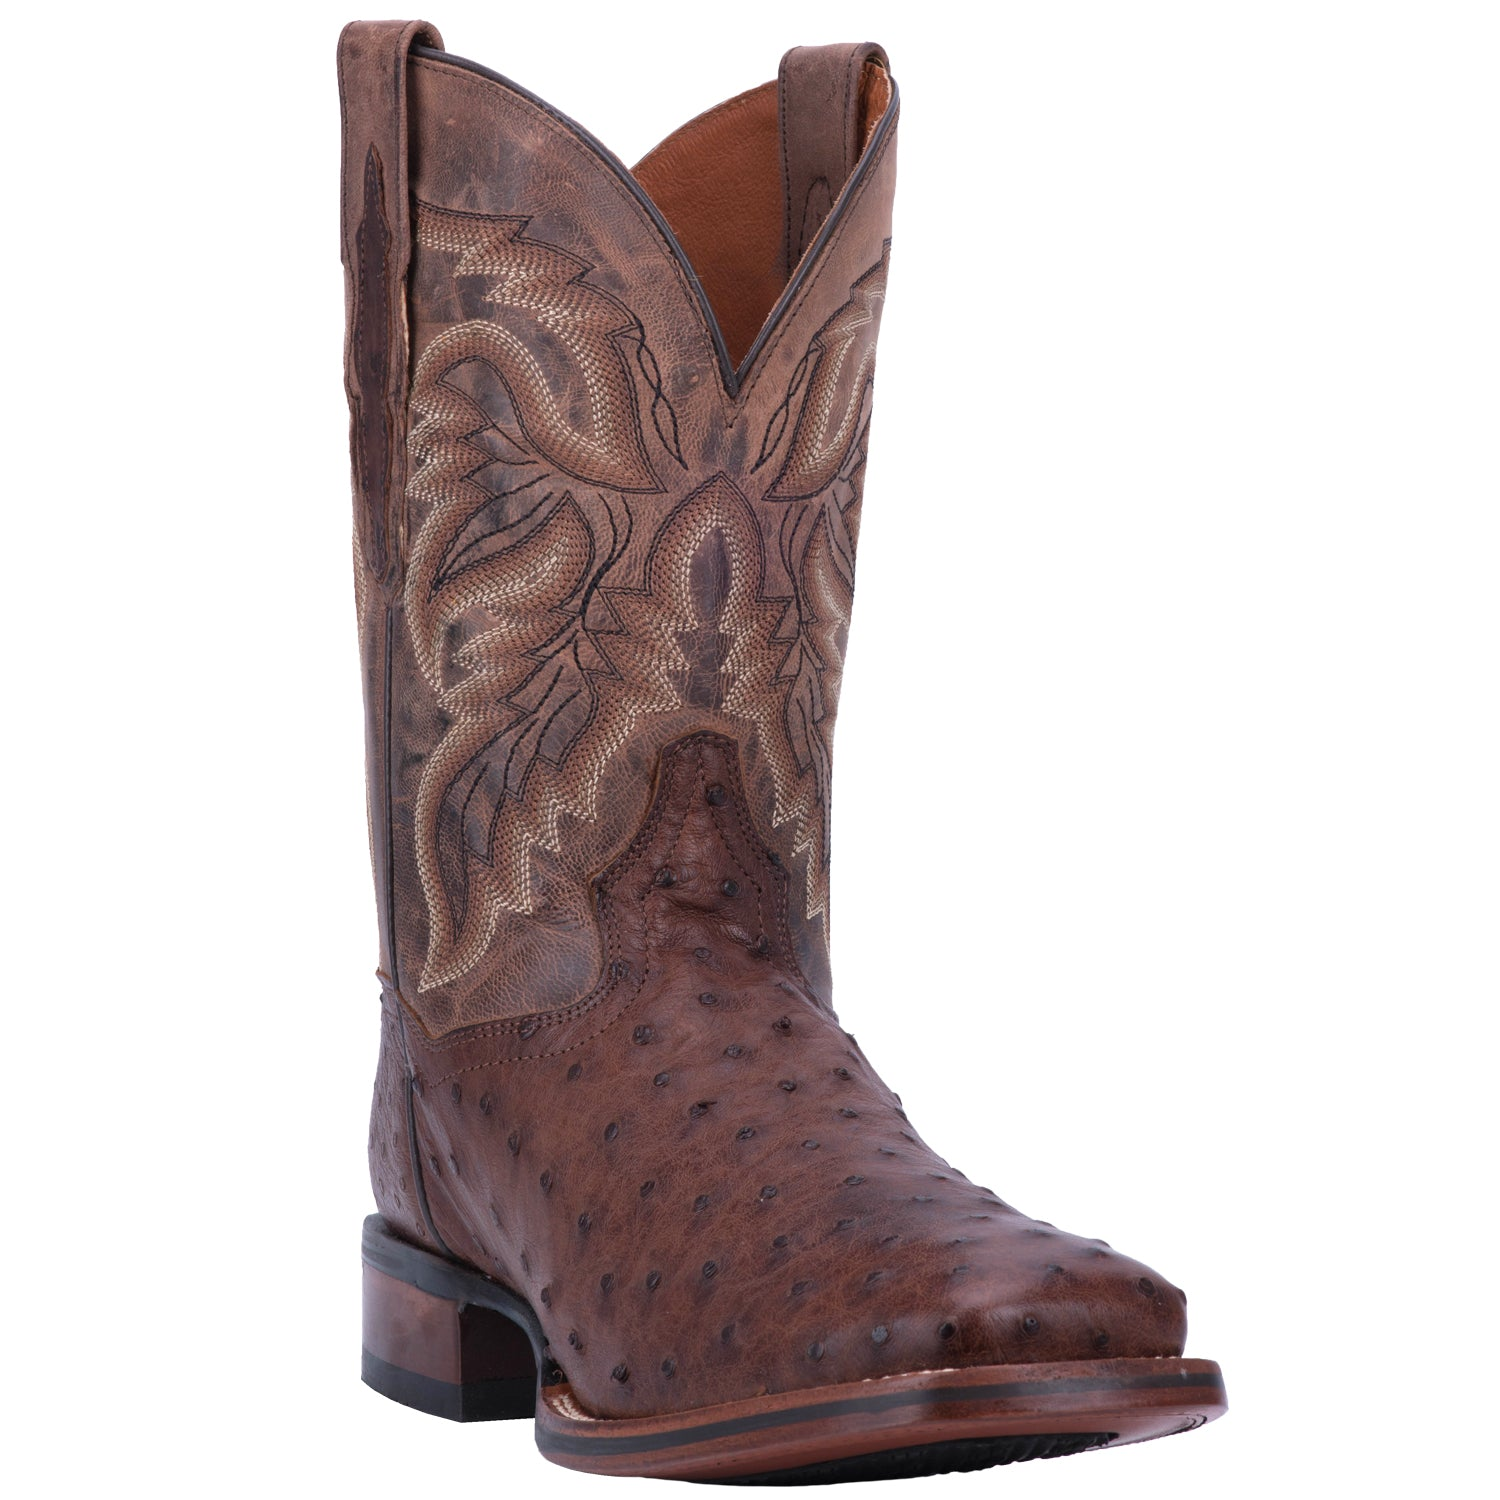 ALAMOSA FULL QUILL OSTRICH BOOT 4248825430058